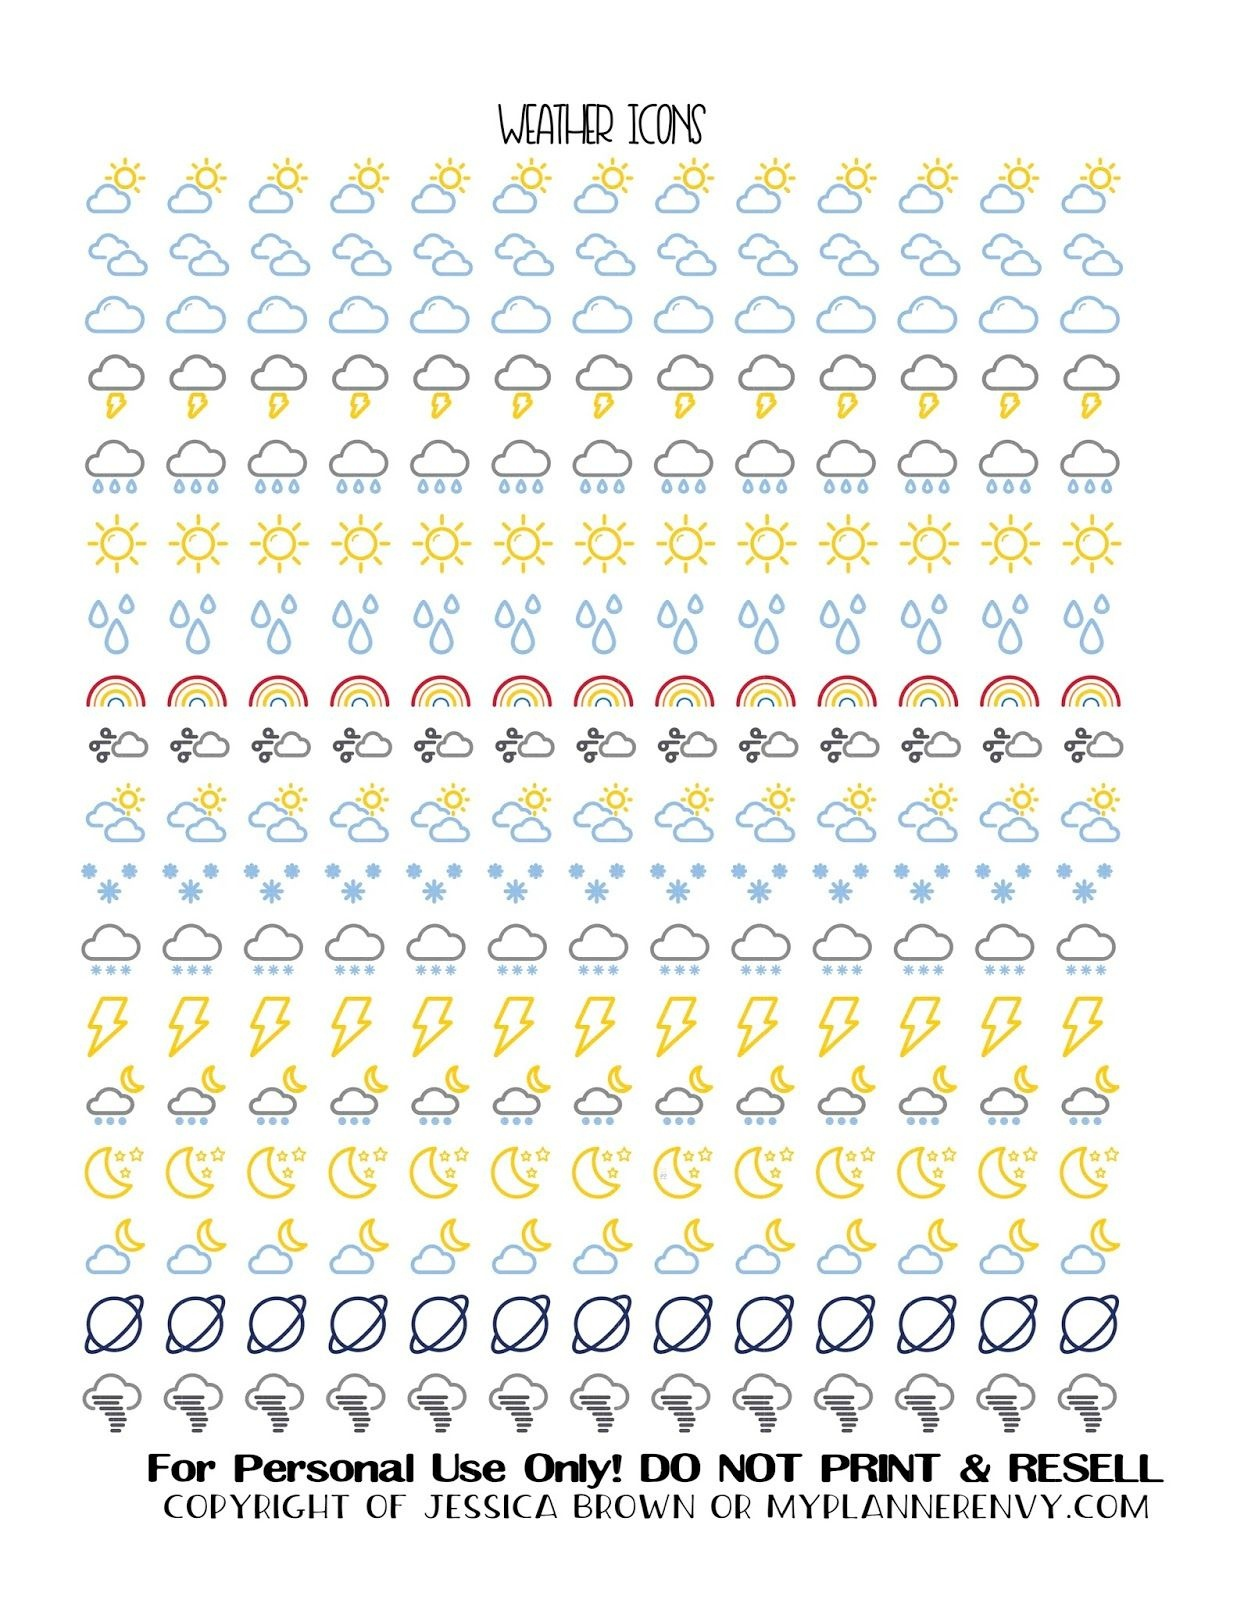 Free Printable Weather Icon Stickers From Myplannerenvy   Mijn - Free Printable Icons